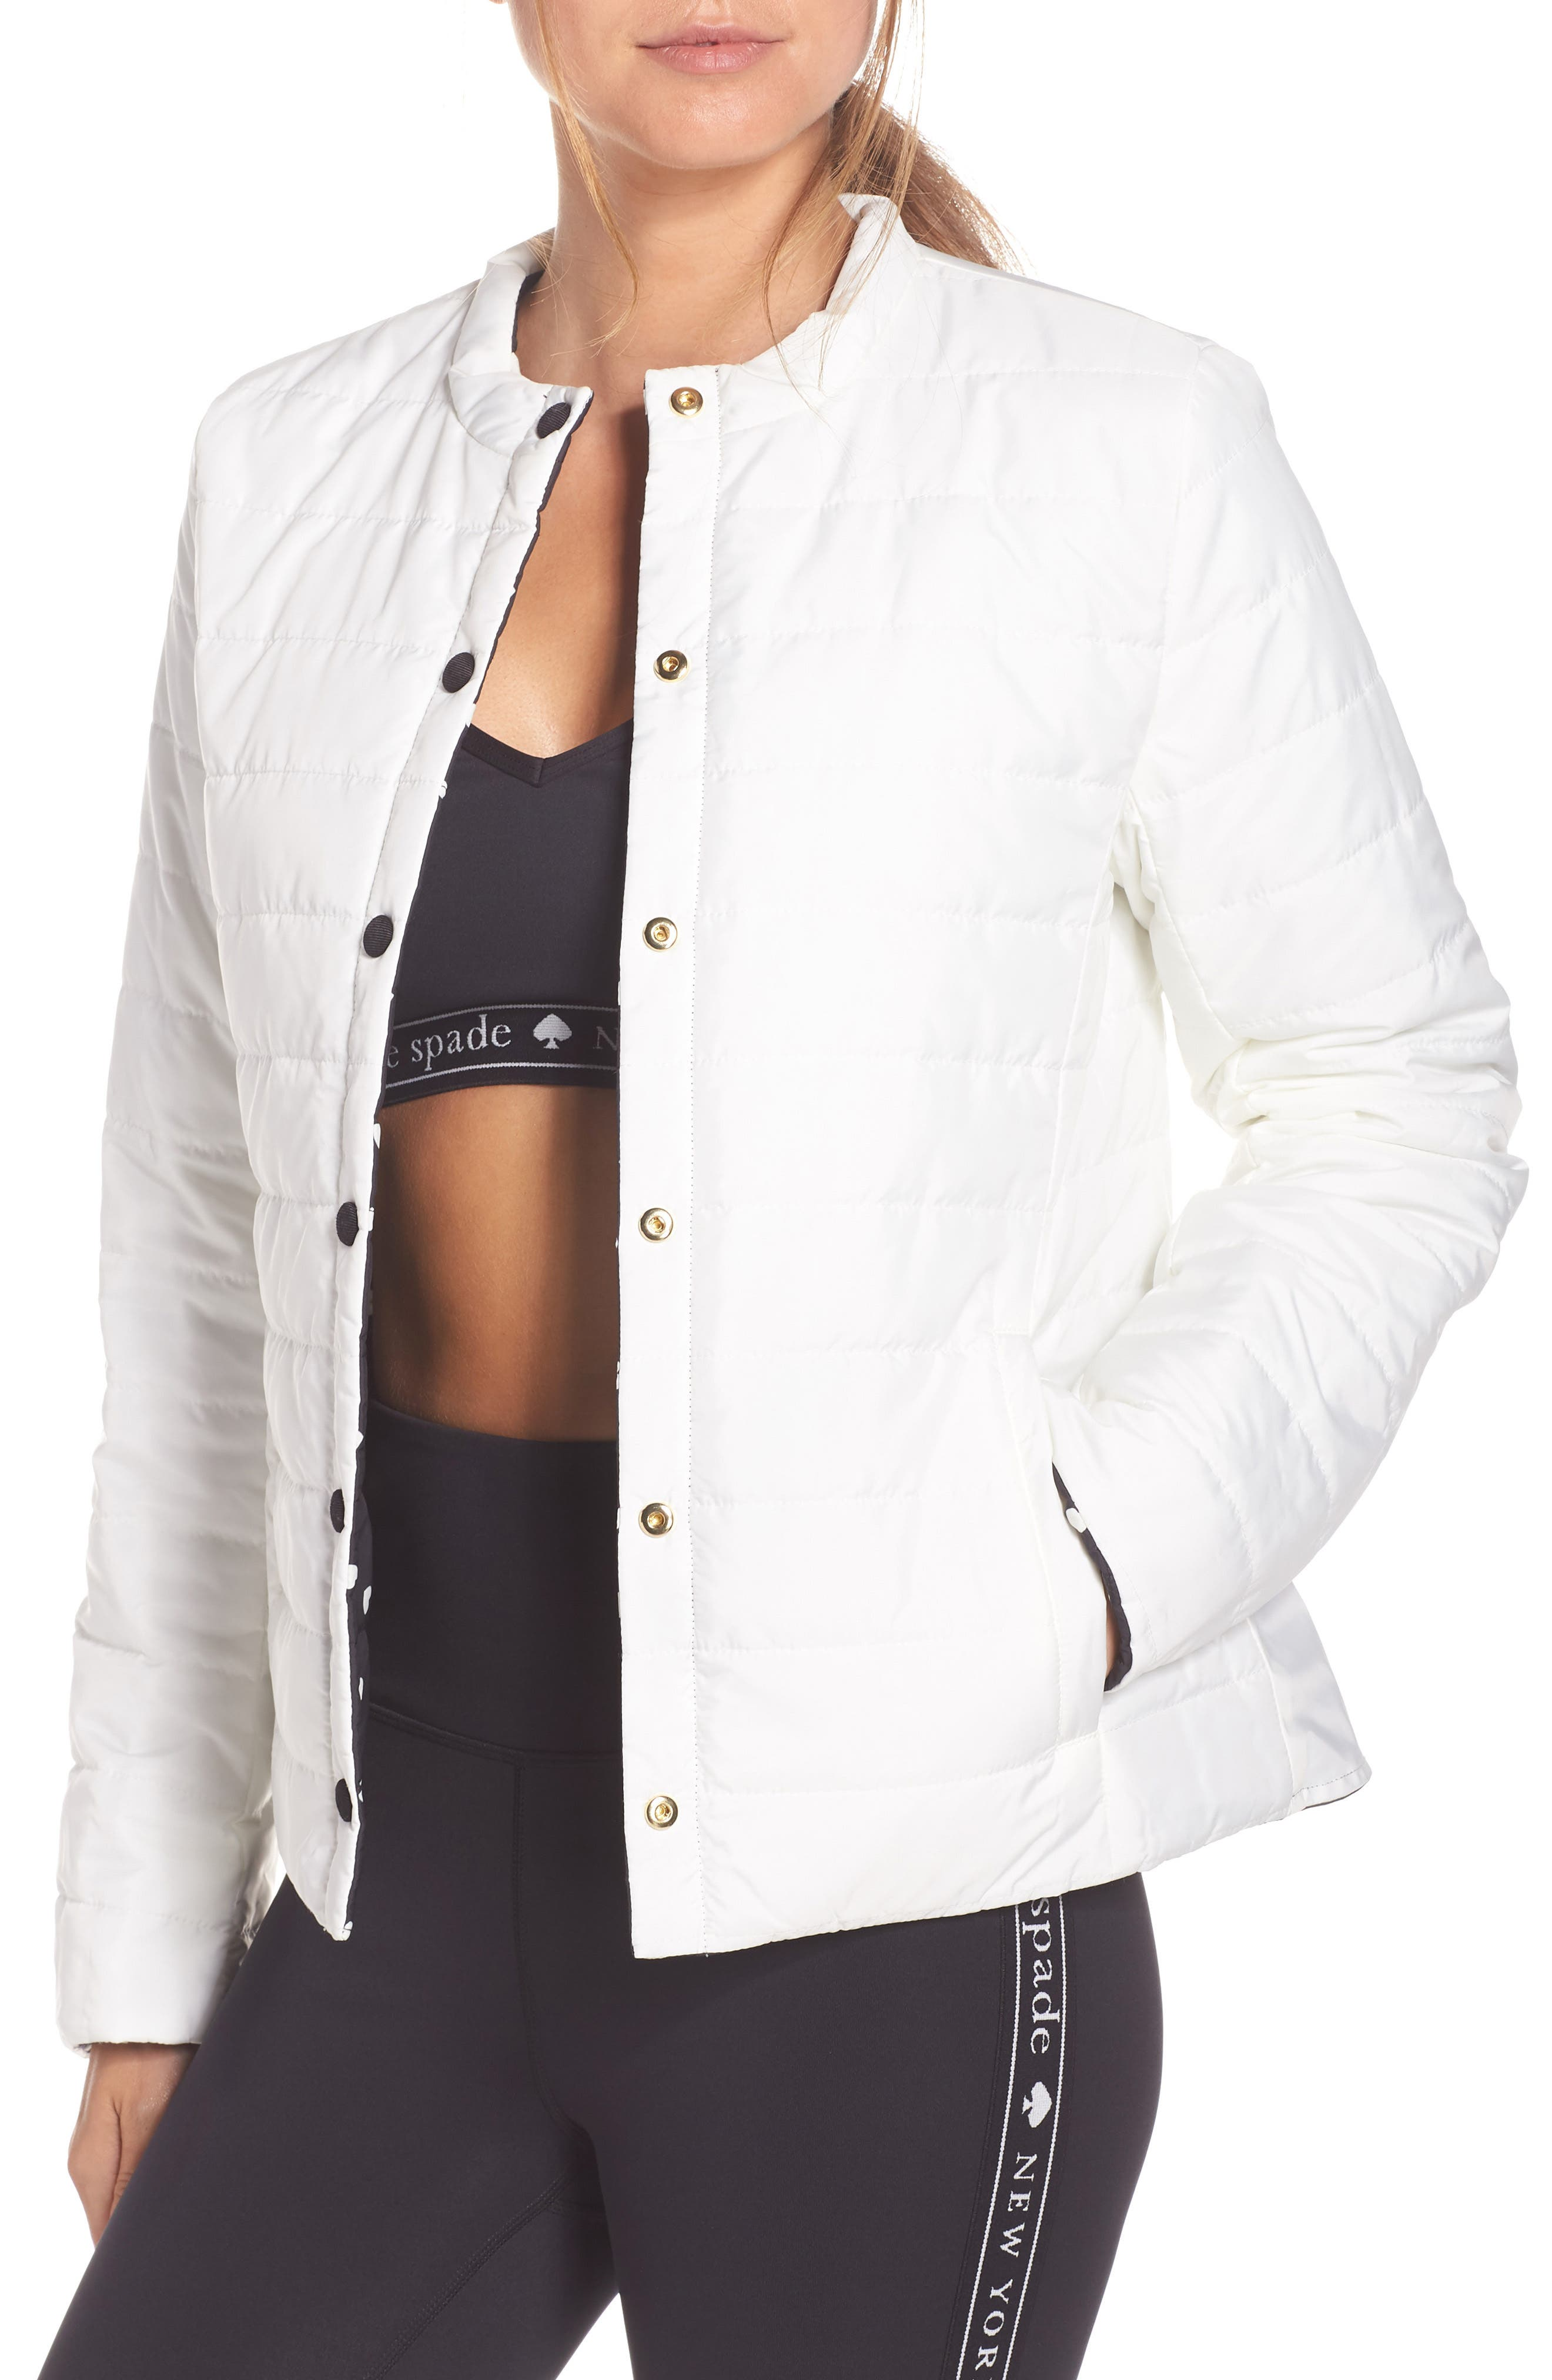 KATE SPADE NEW YORK,                             ruffle reversible quilted jacket,                             Alternate thumbnail 2, color,                             001